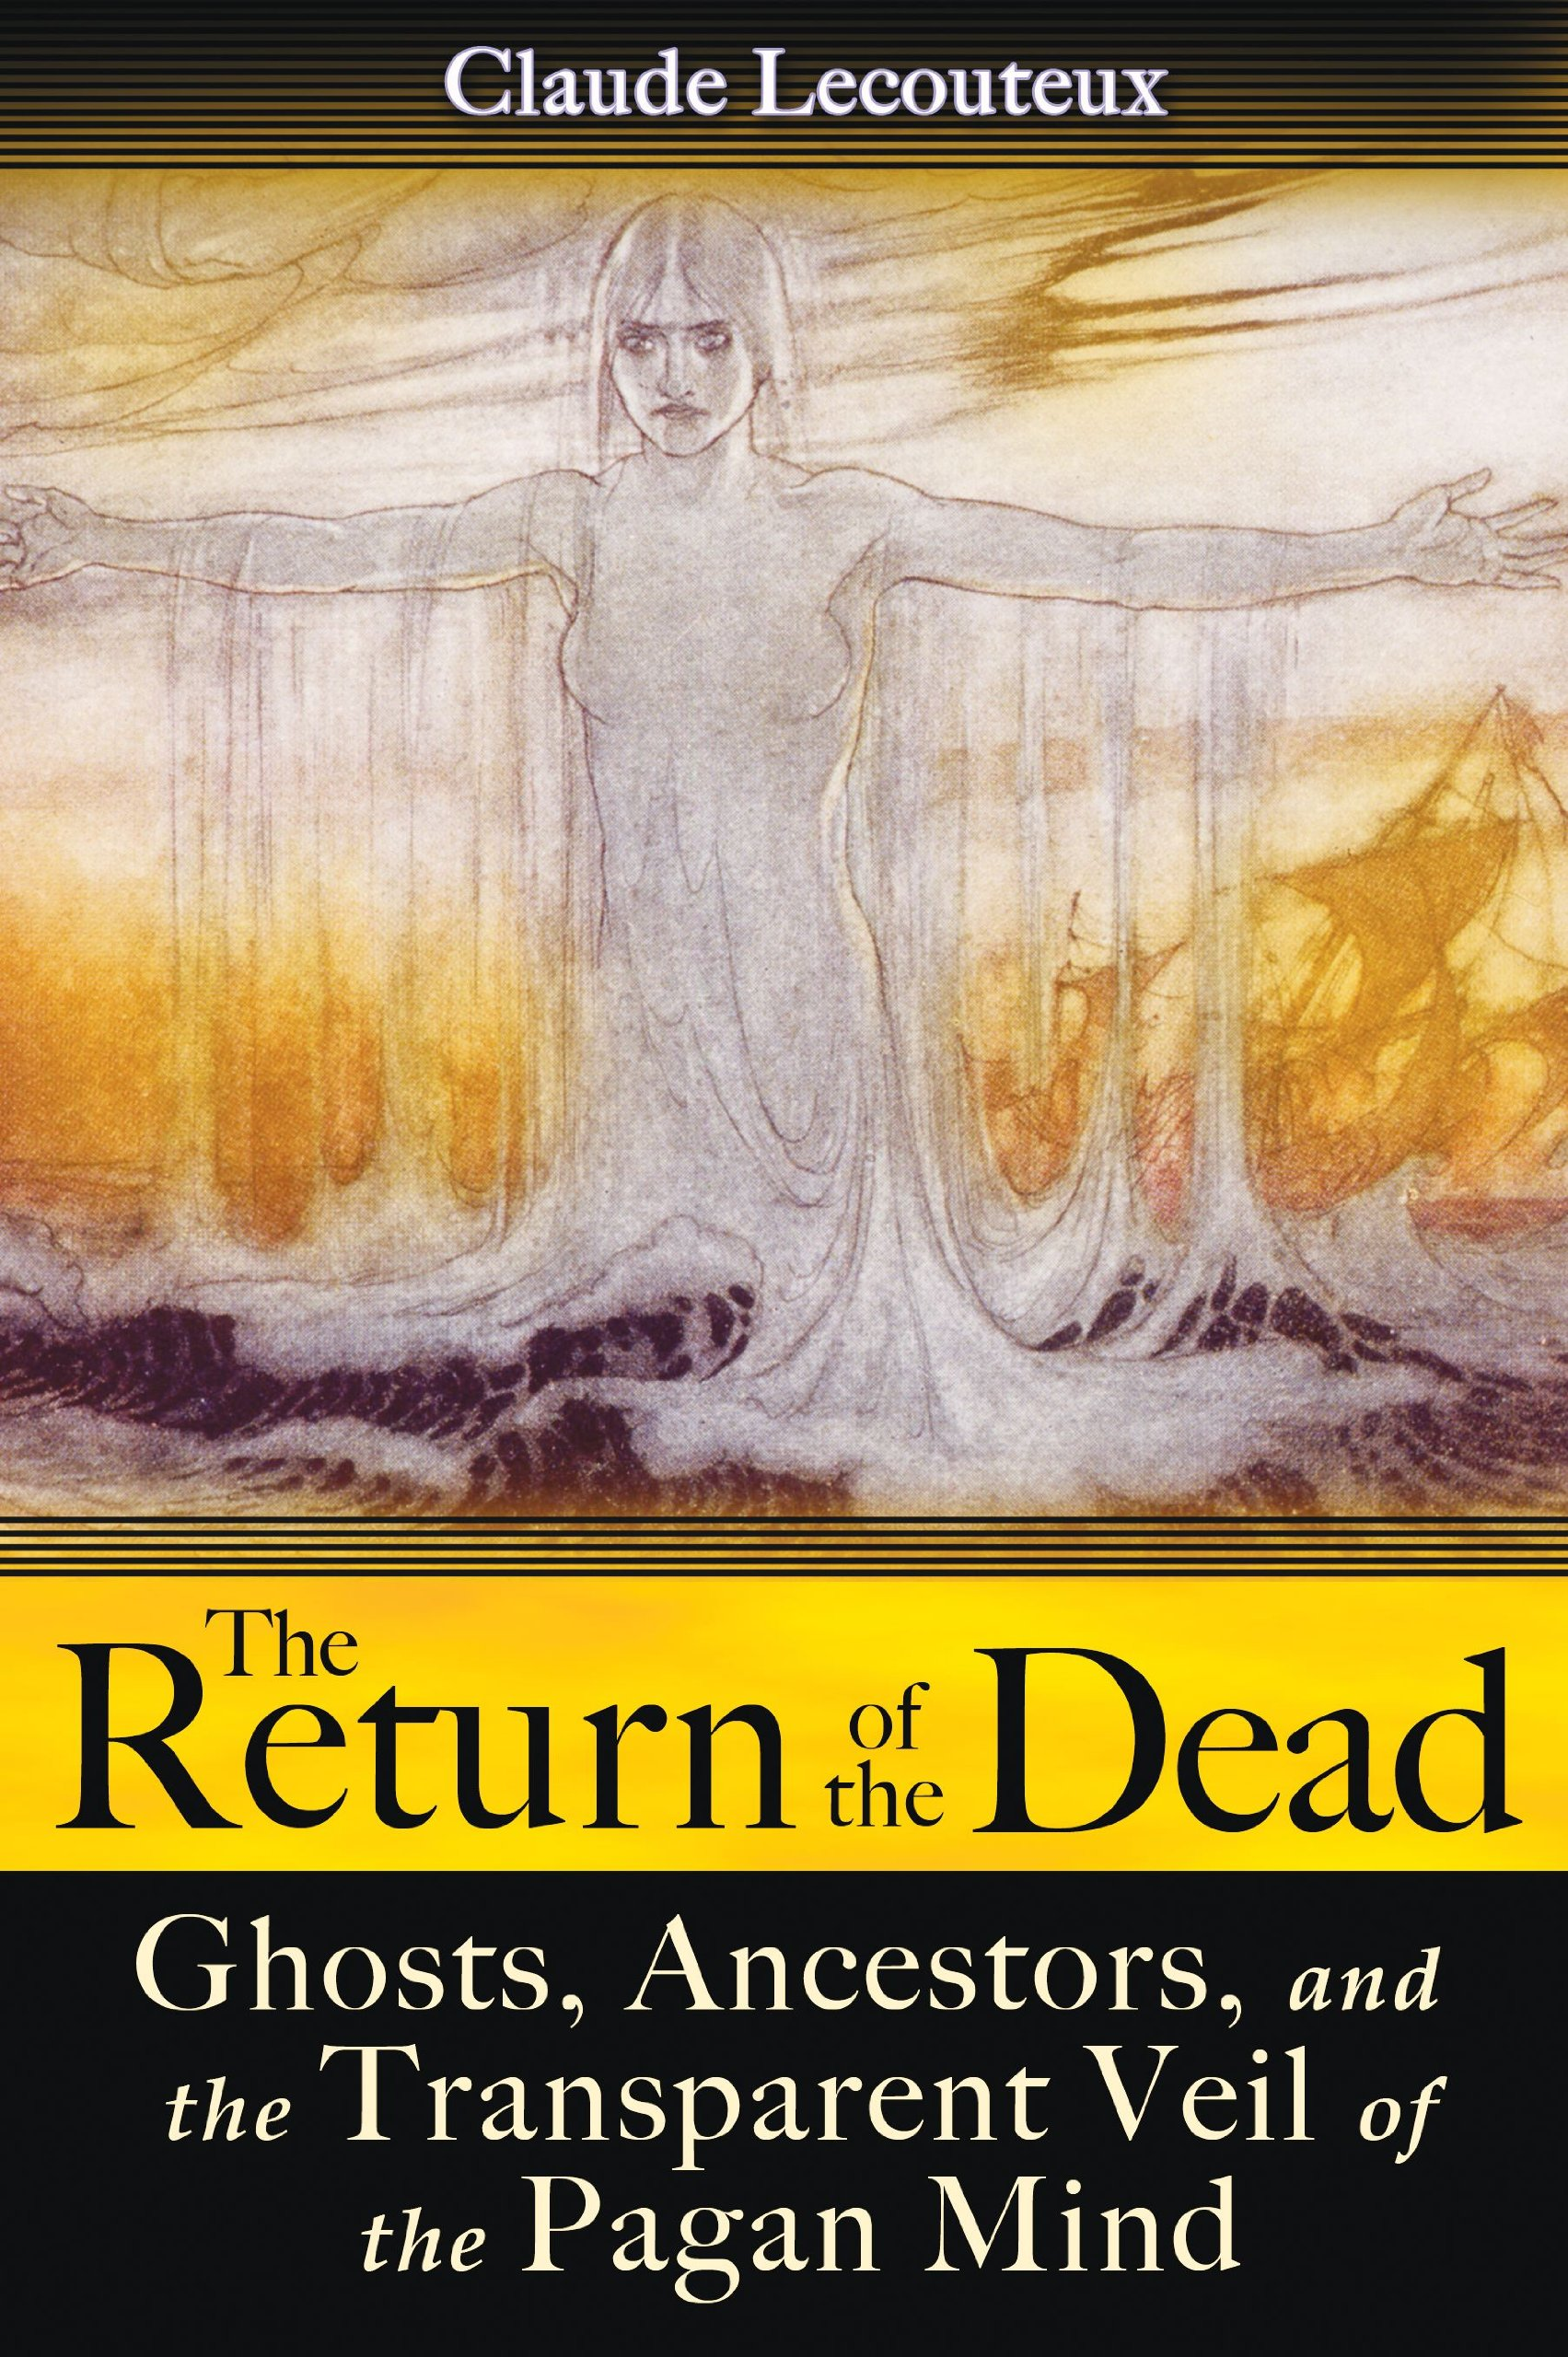 The Return of the Dead: Ghosts, Ancestors, and the Transparent Veil of the Pagan Mind pdf